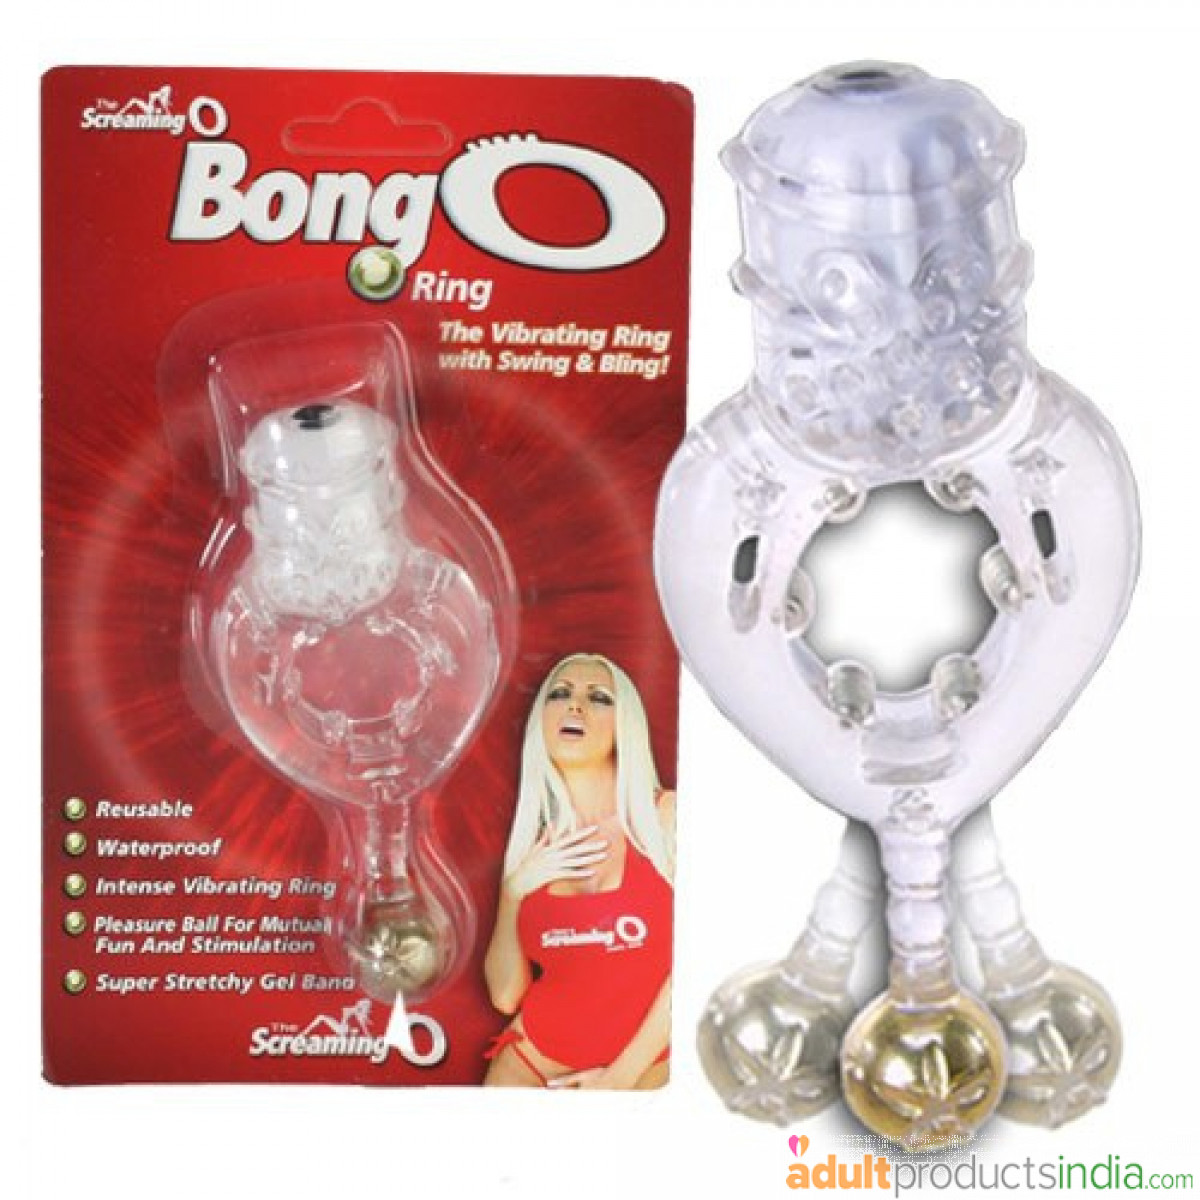 Screaming O - Vibrating Ring with Swing & Bling